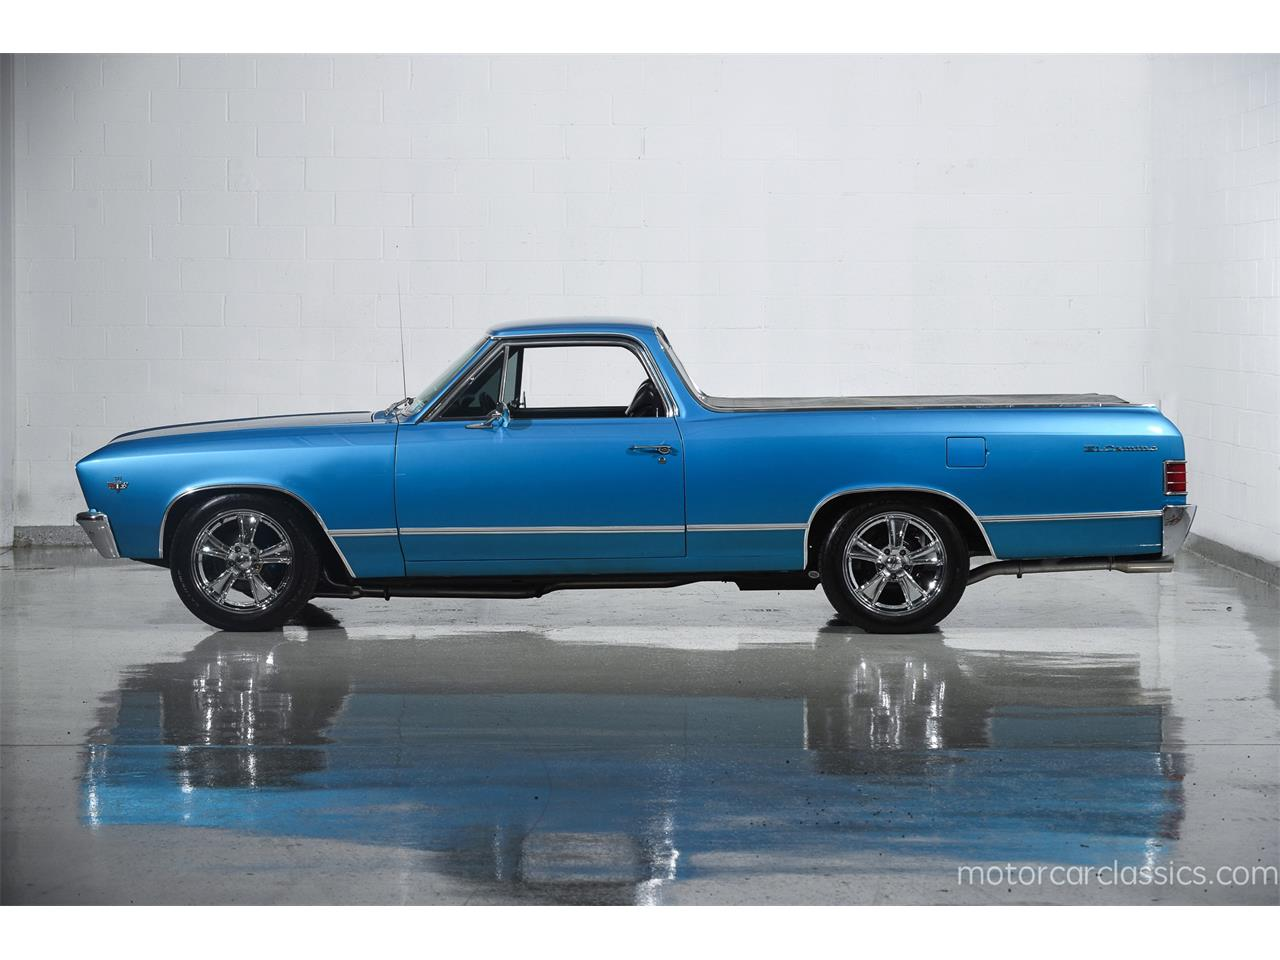 Large Picture of Classic '67 Chevrolet El Camino located in New York - $42,500.00 - MBON